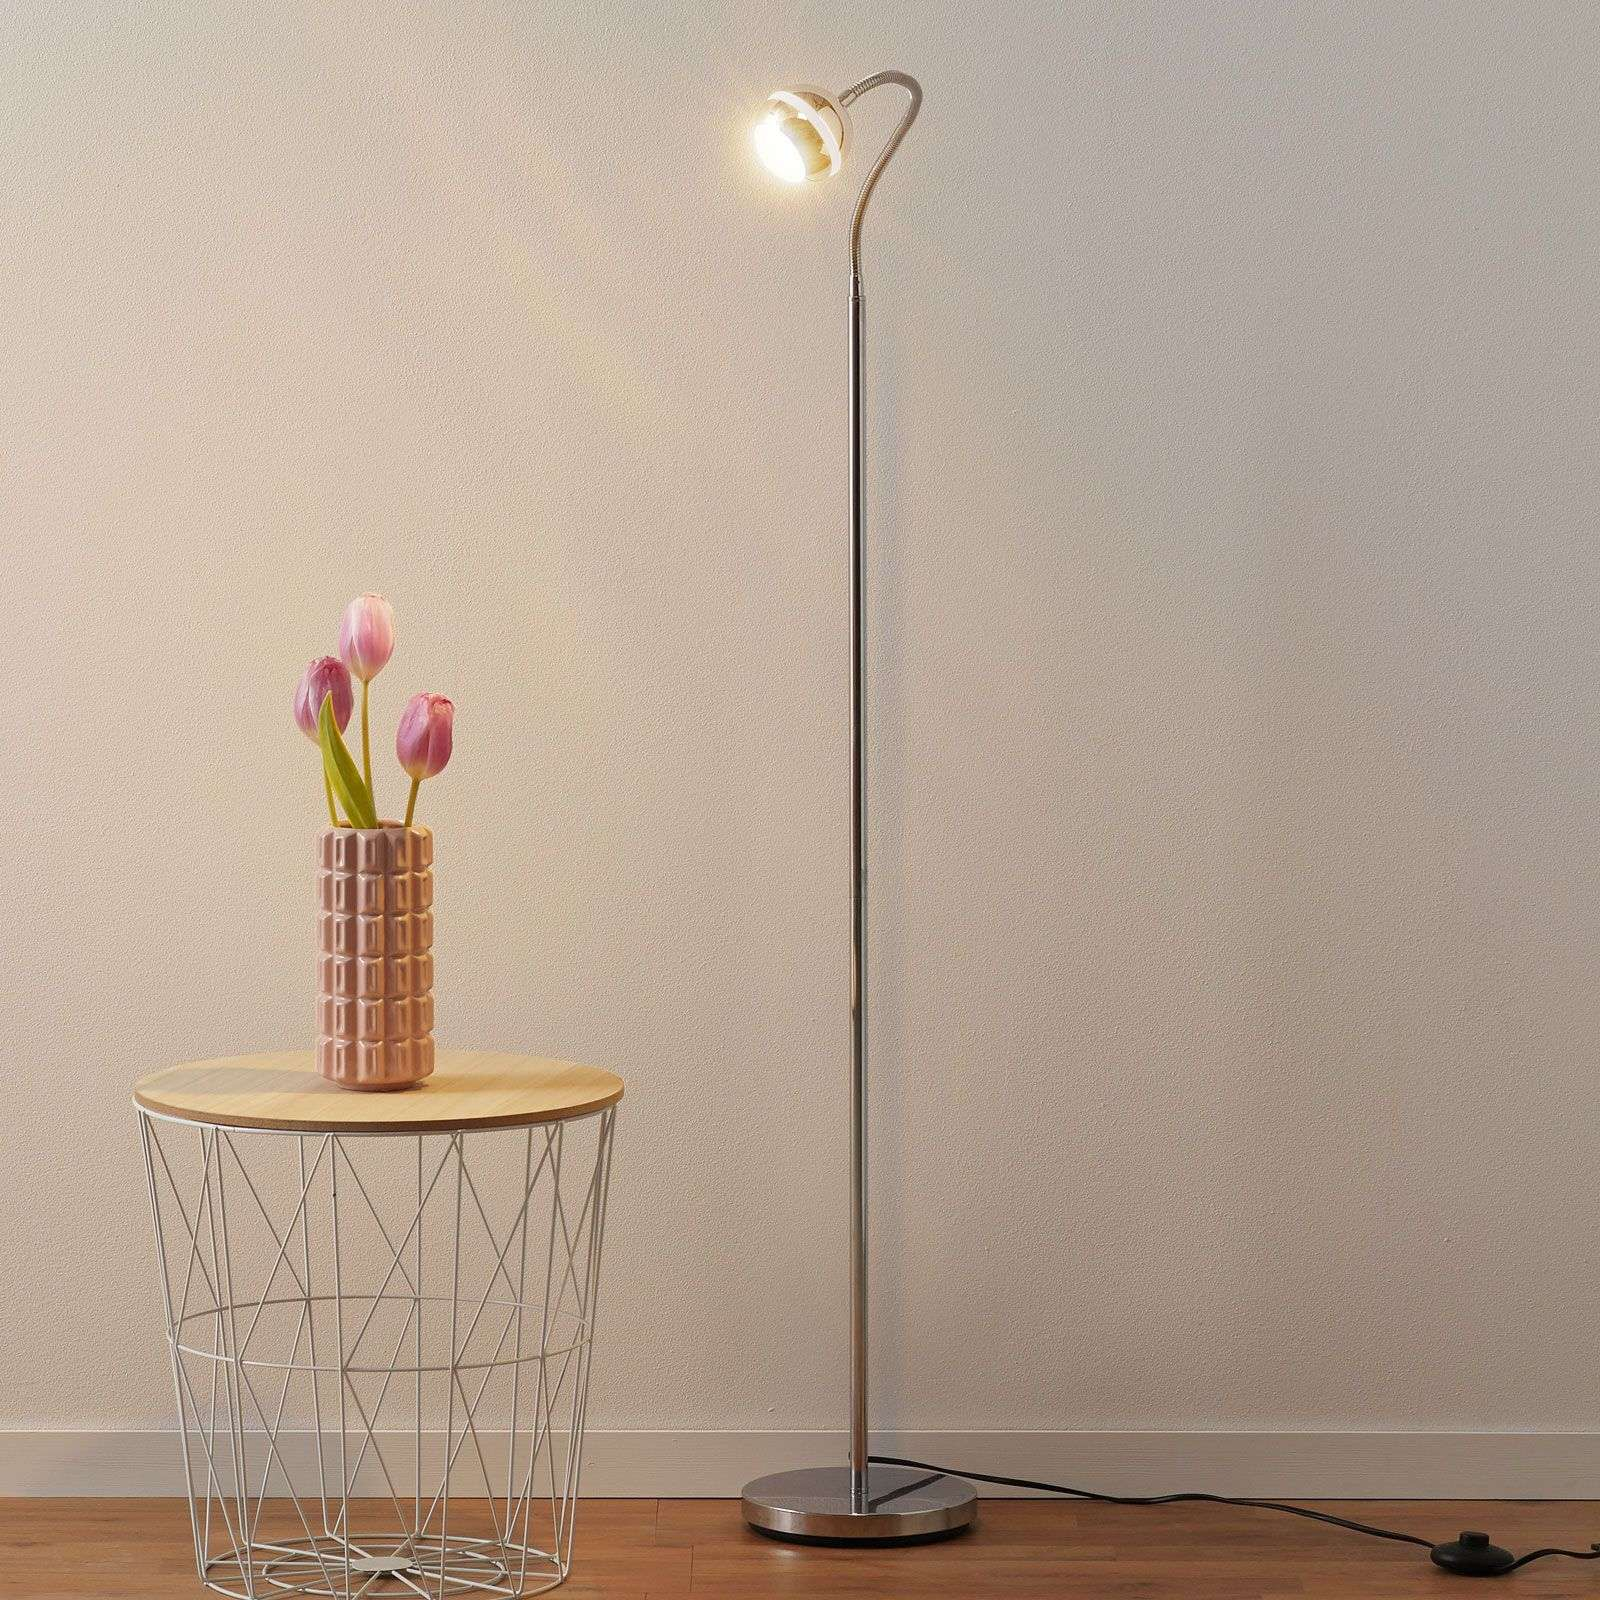 Narrow Ada LED floor lamp-9004580-31